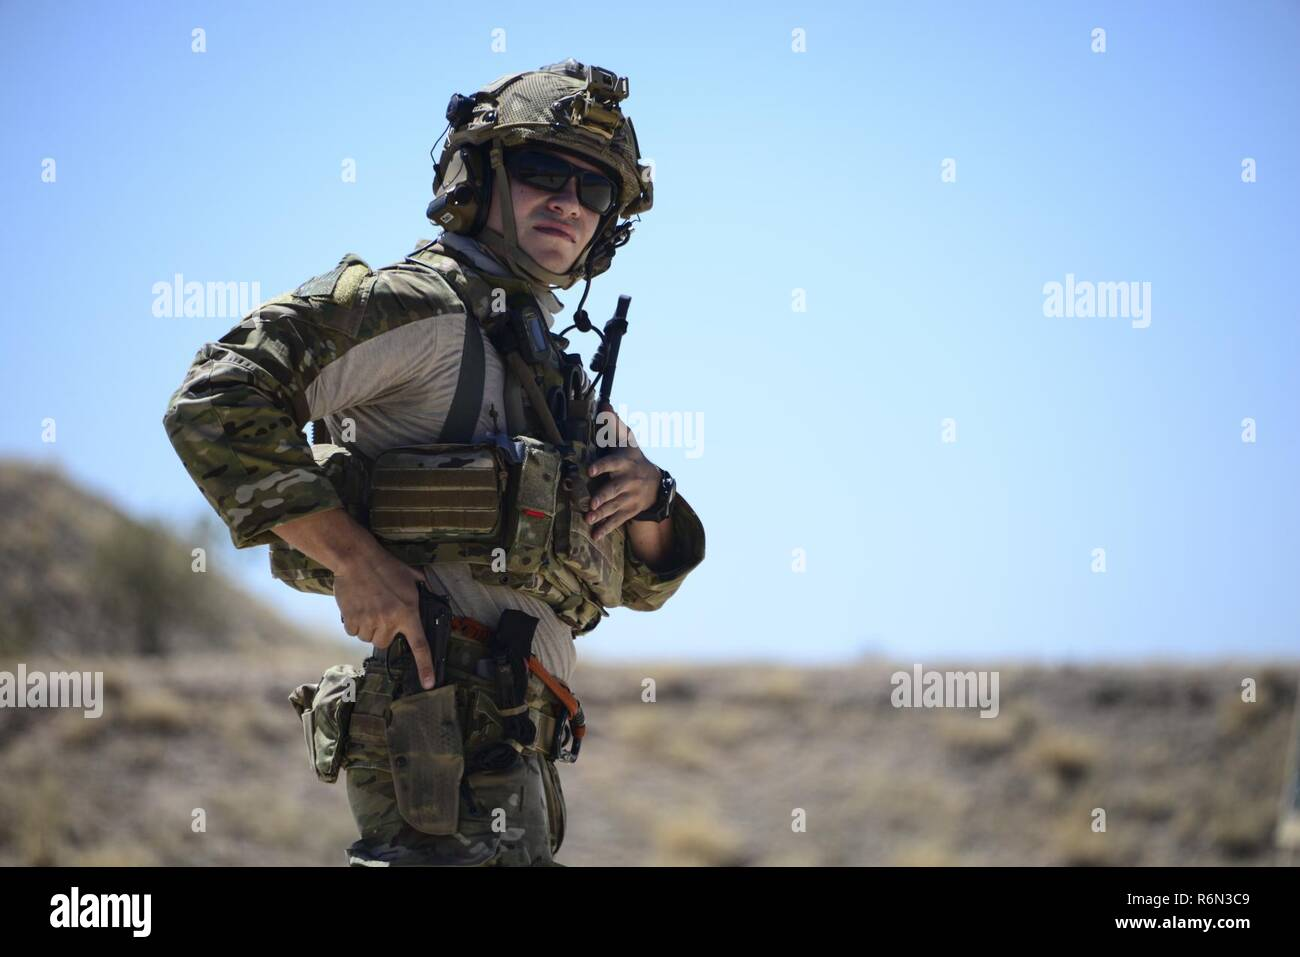 A U.S. Air Force pararescueman holsters his weapon during the Guardian Angel Mission Qualification Training course at Davis-Monthan Air Force Base, Ariz., May 17, 2017. The MQT is a 90 day GA Formal traning course that takes pararescuemen who have completed Air Education and Training Command schooling and helps them achieve their 5-level qualification. - Stock Image